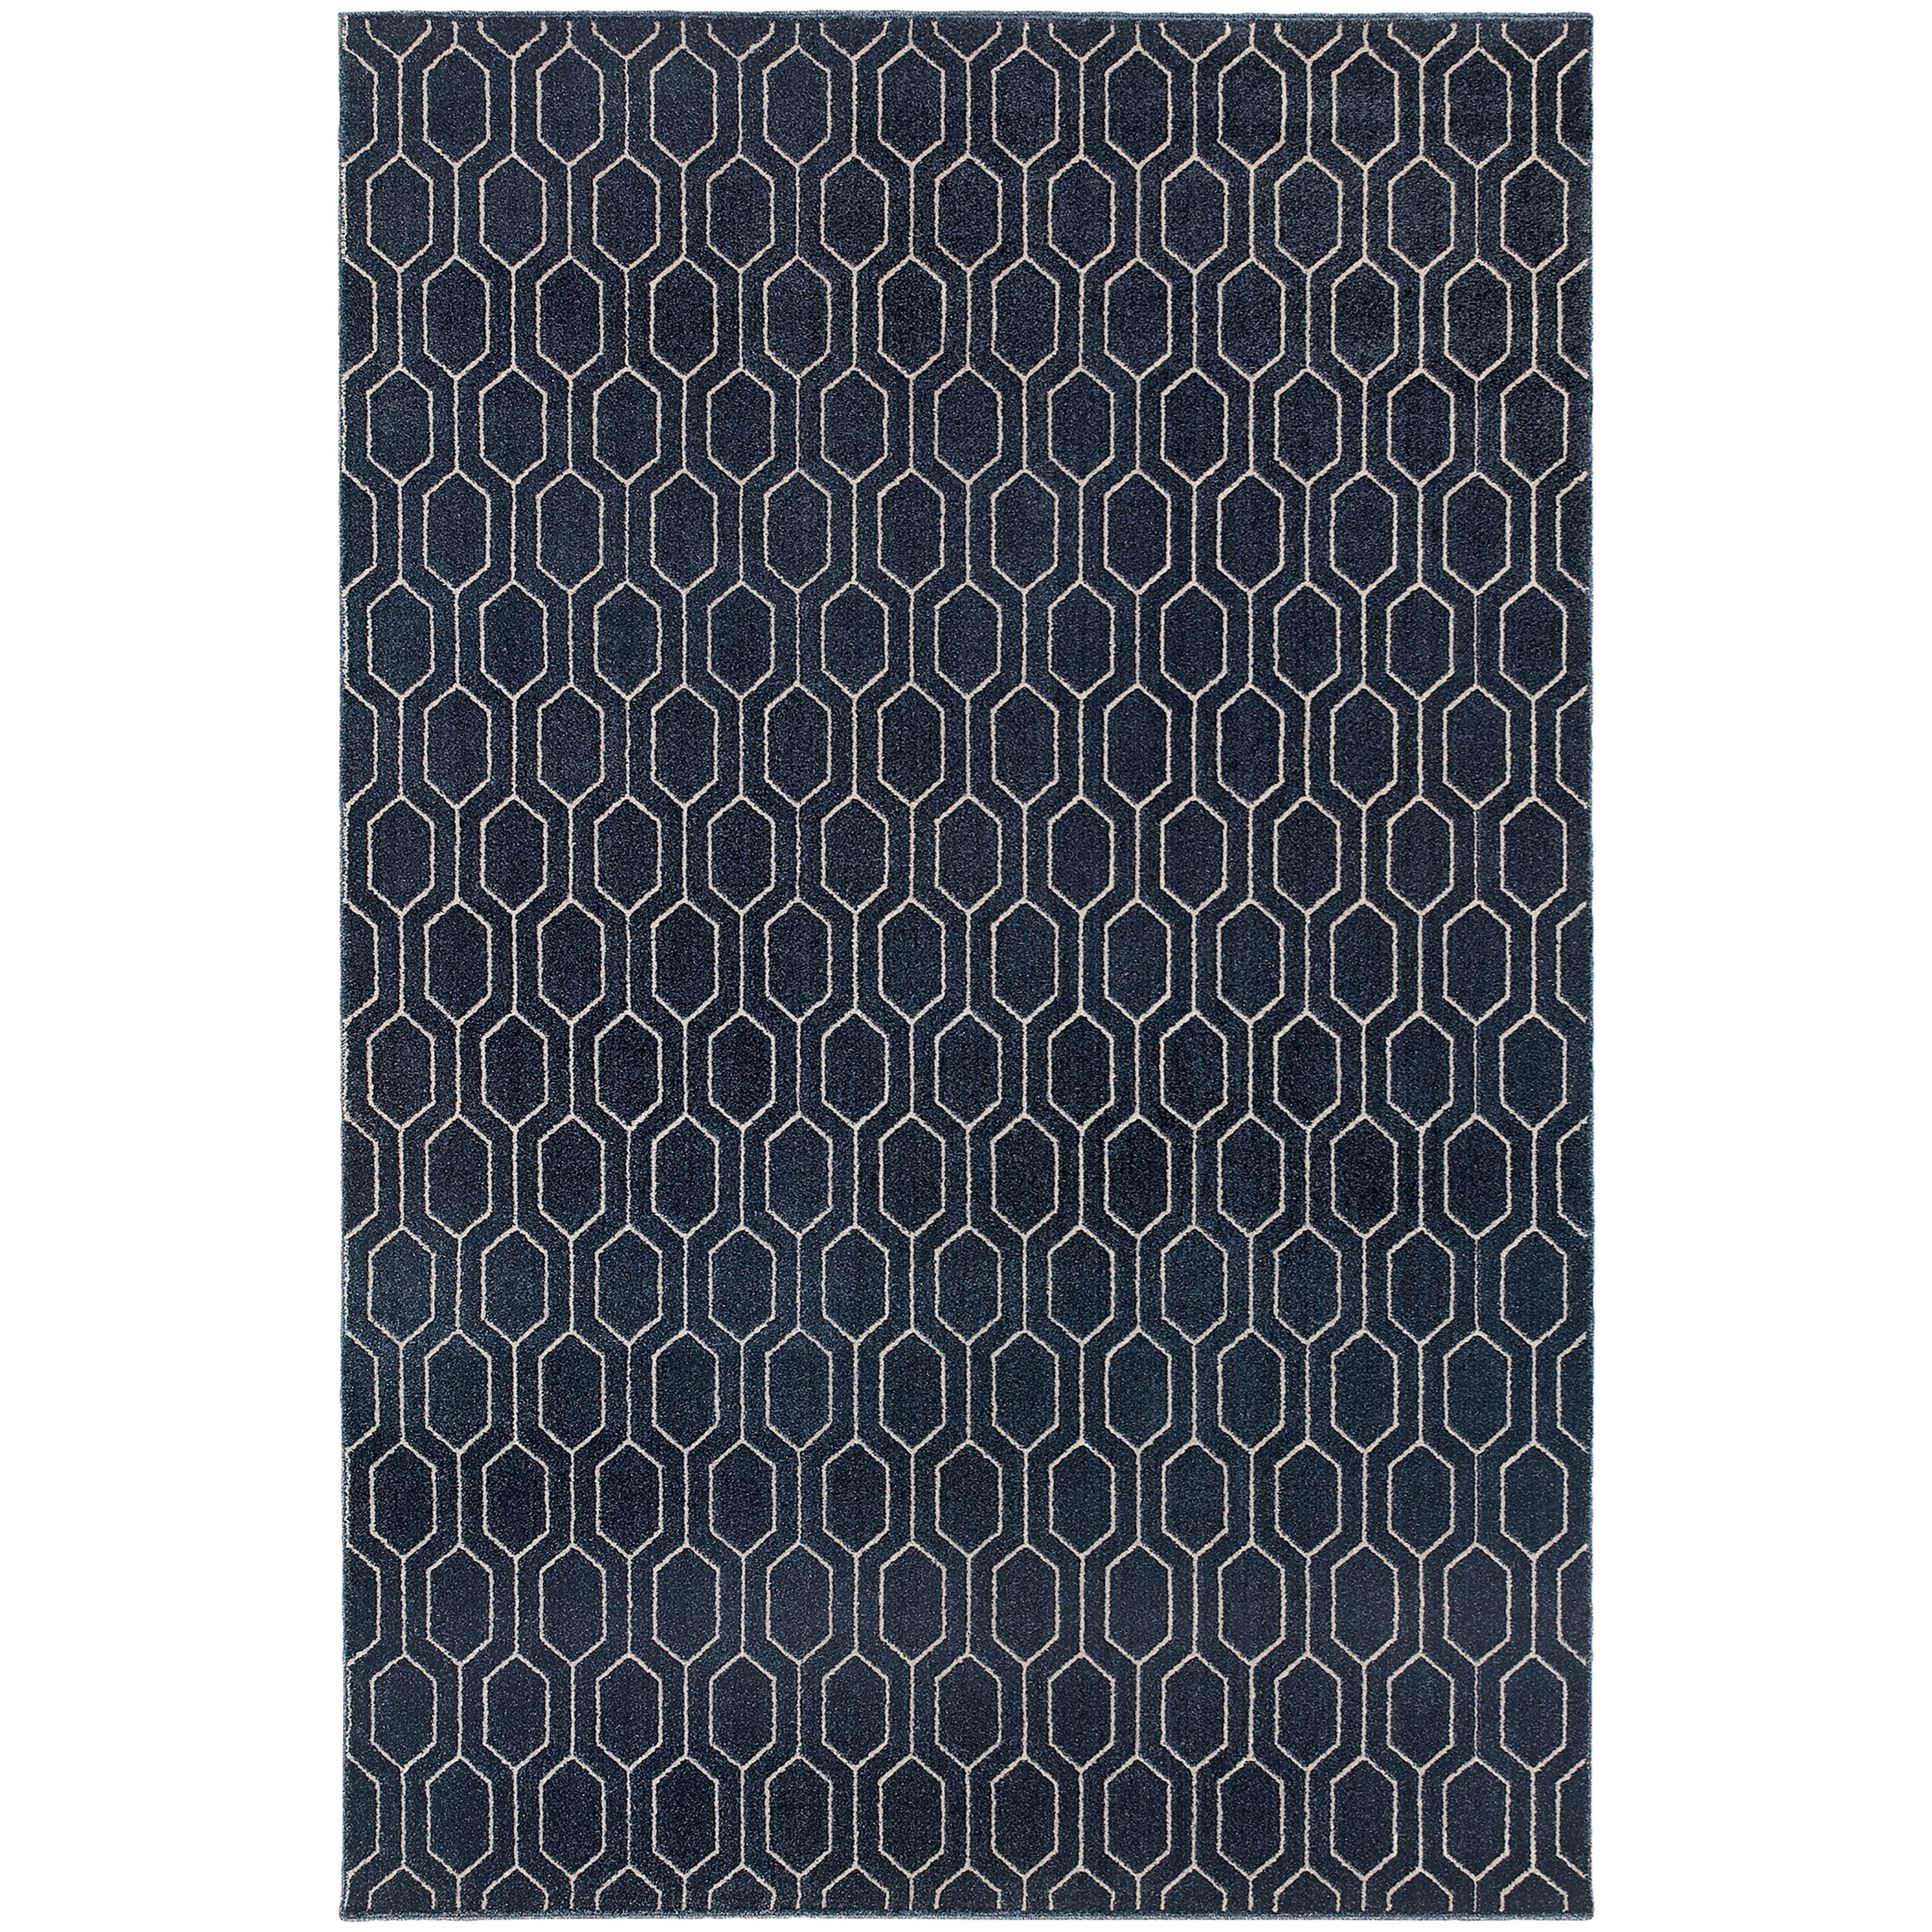 "Ellerson 2' 3"" X  7' 6"" Rug Runner by Oriental Weavers at Esprit Decor Home Furnishings"